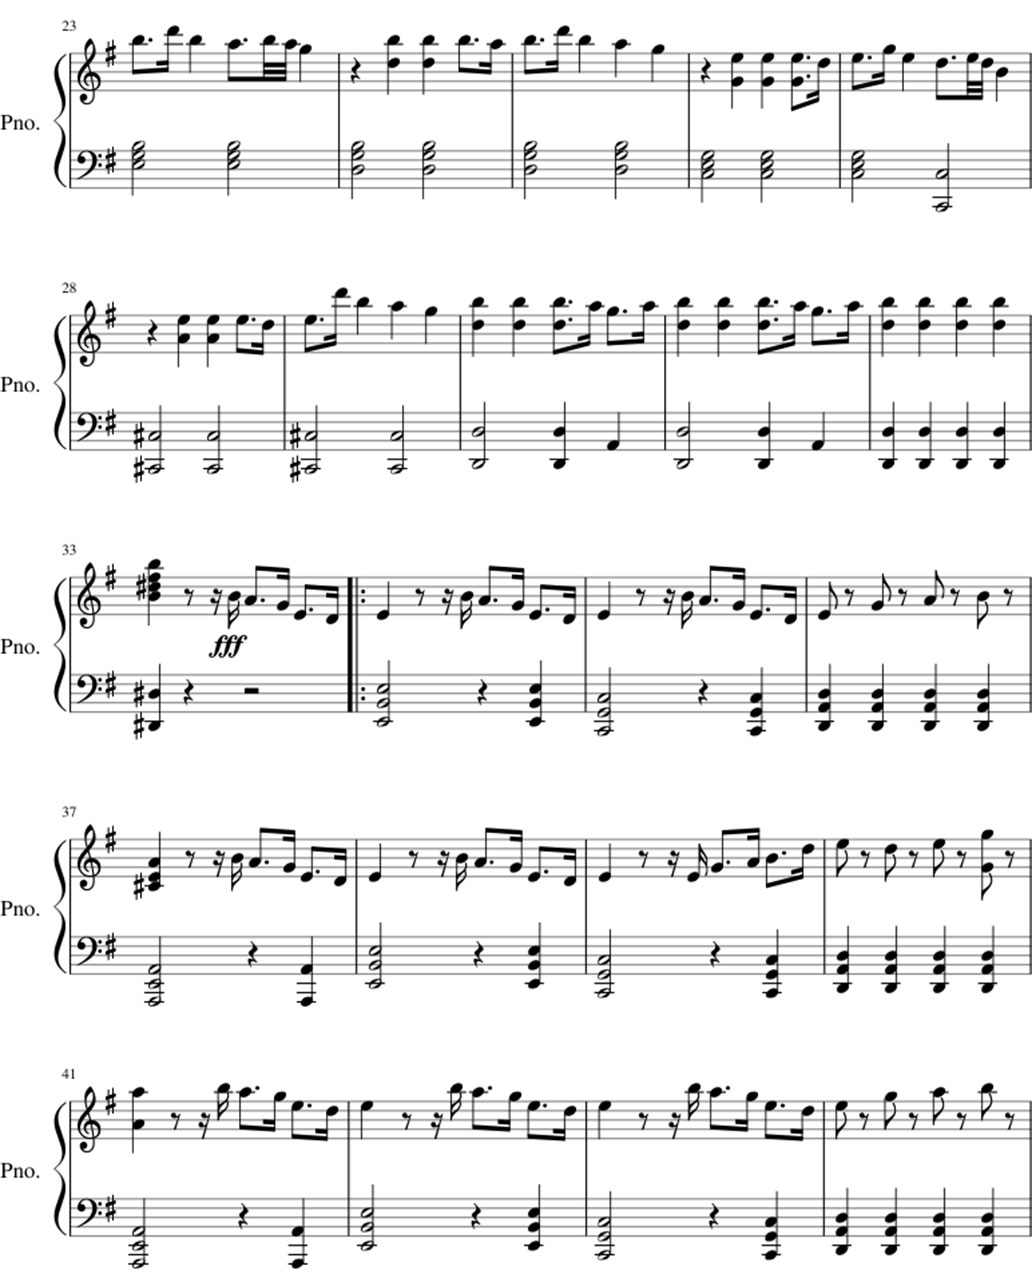 Unity sheet music notes 2